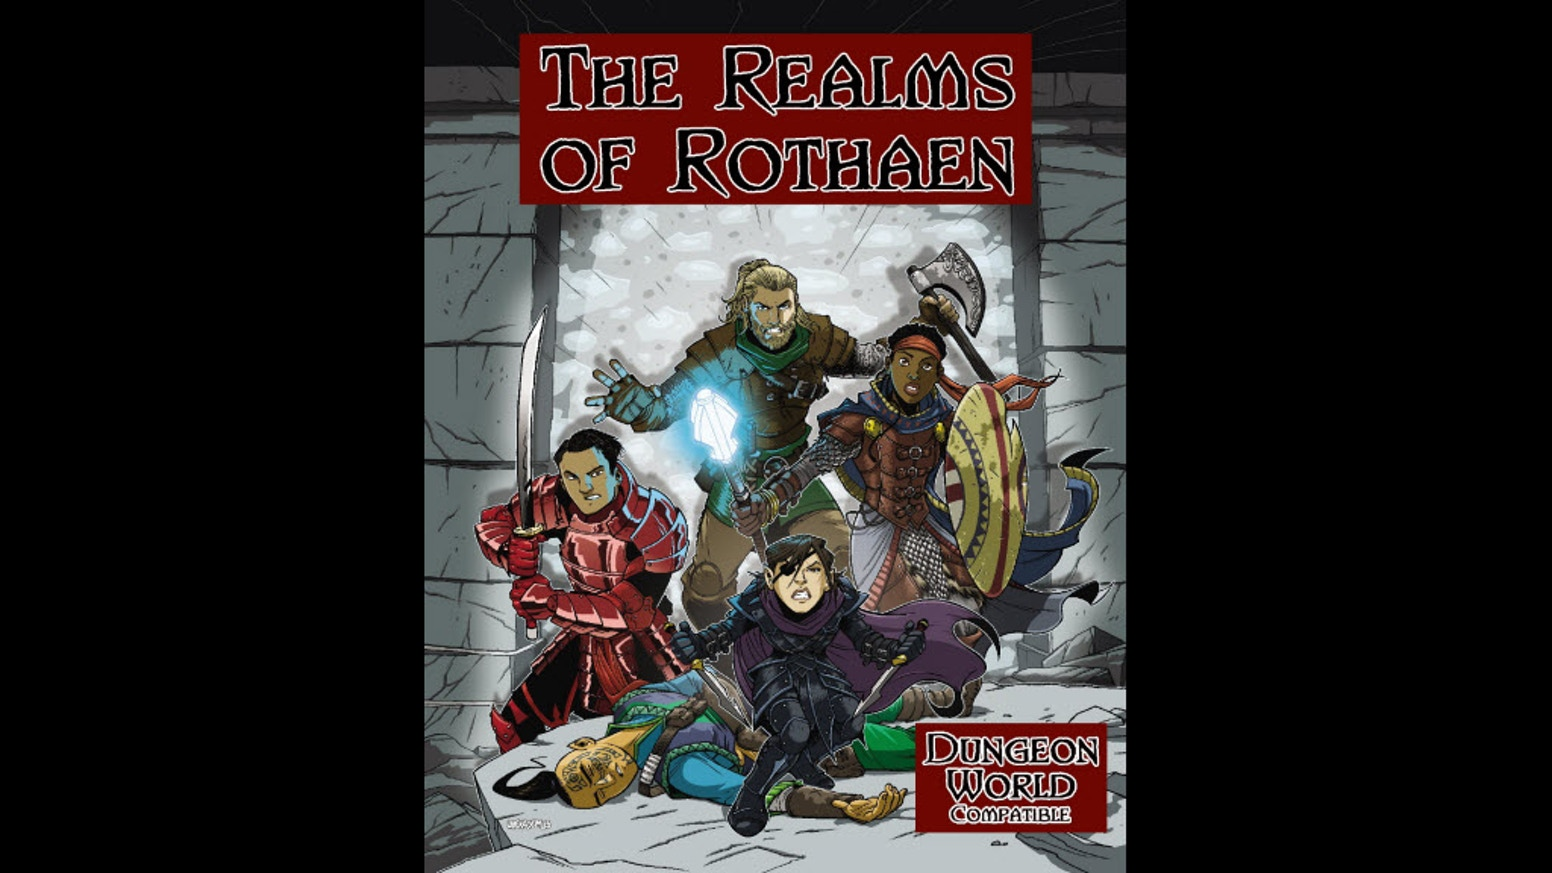 A dark pulp setting with modern story elements that is compatible with the Dungeon World system.